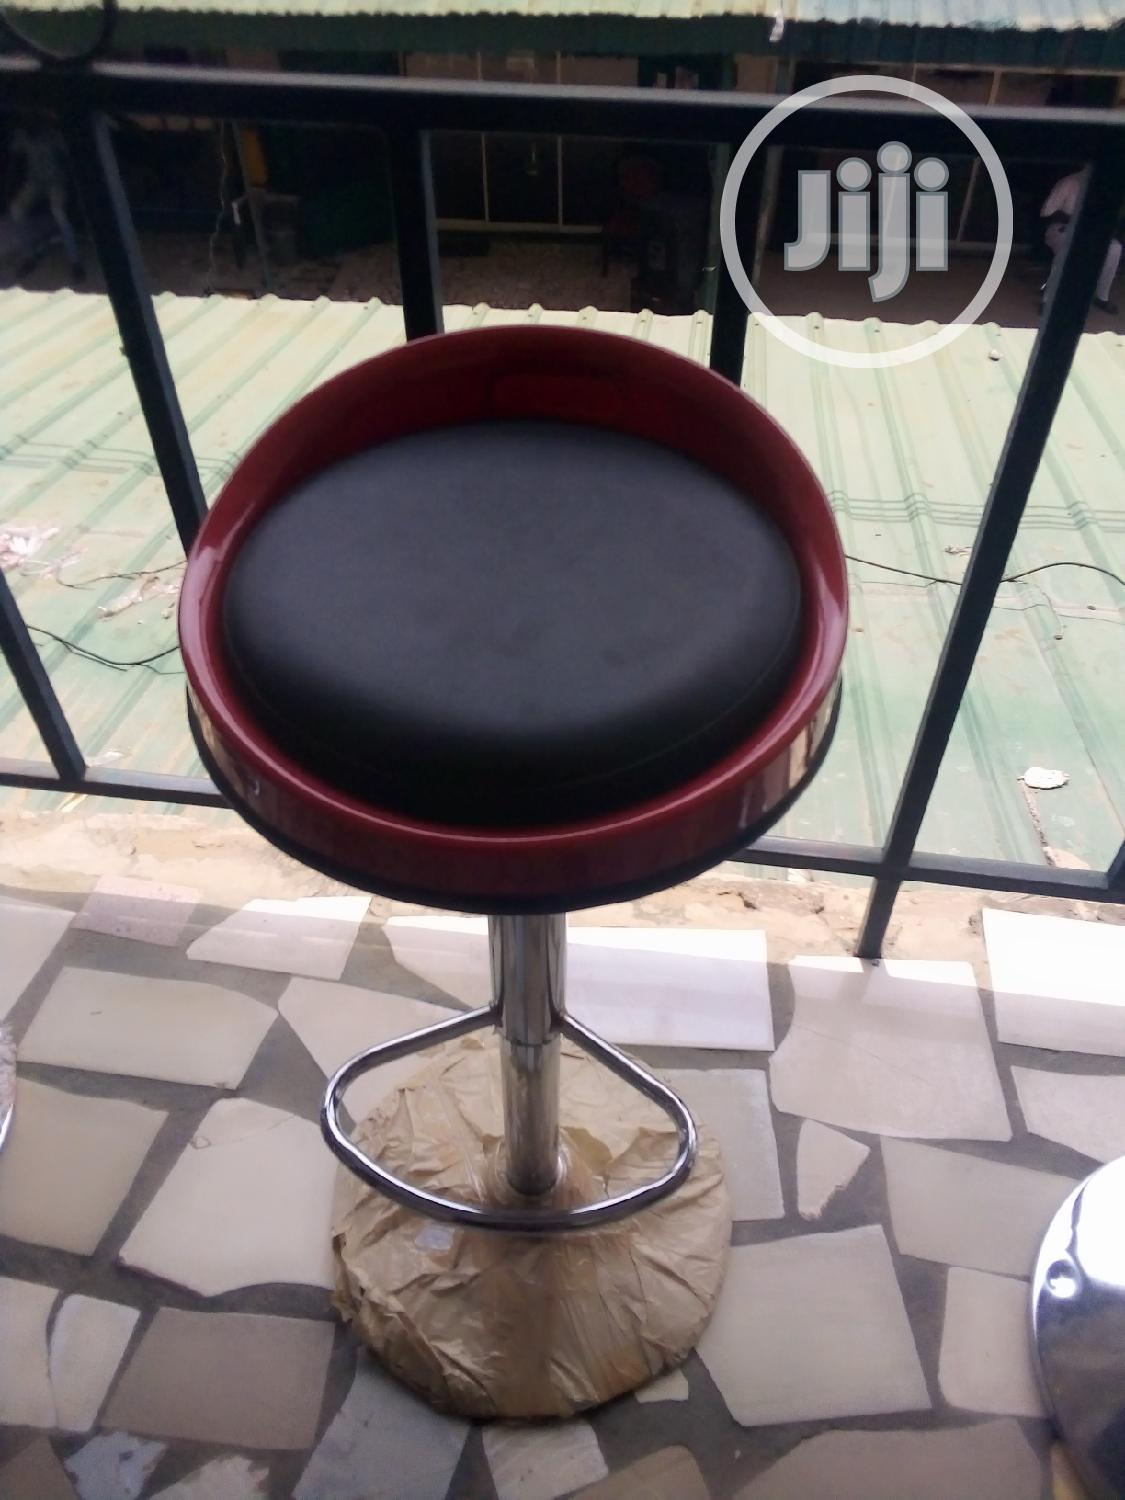 Unique Swivel Fibre Bar Stool, With Foam Pad On The Sit